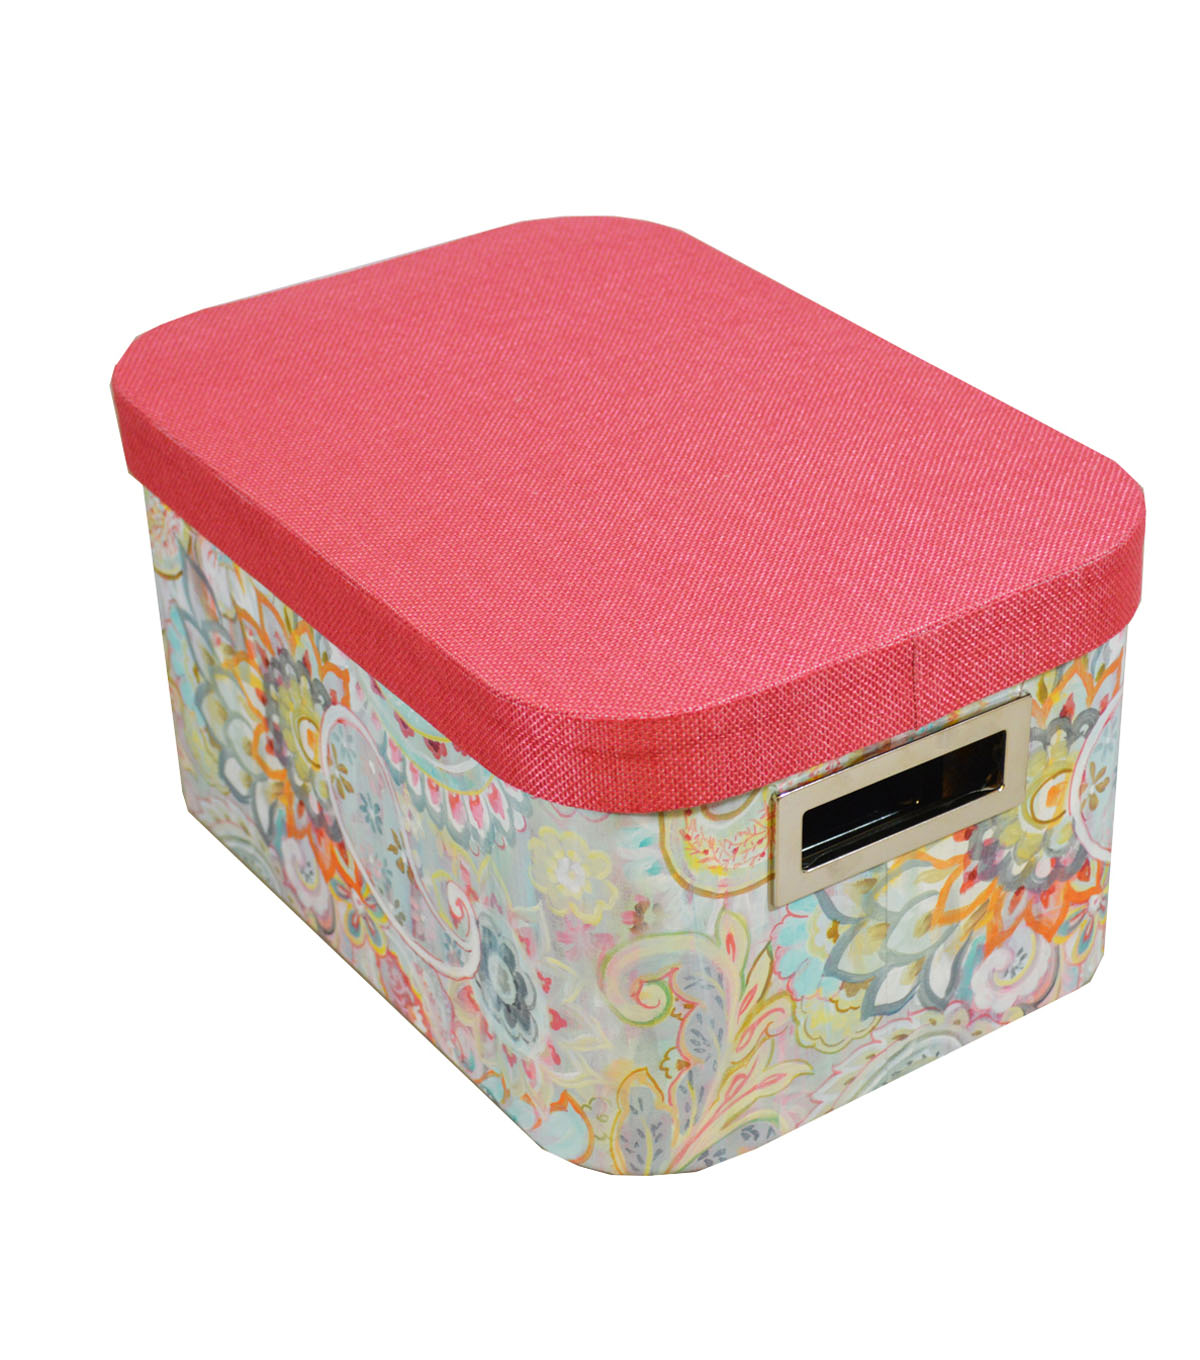 Organizing Essentials Medium Oval Storage Box-Boho Japonais